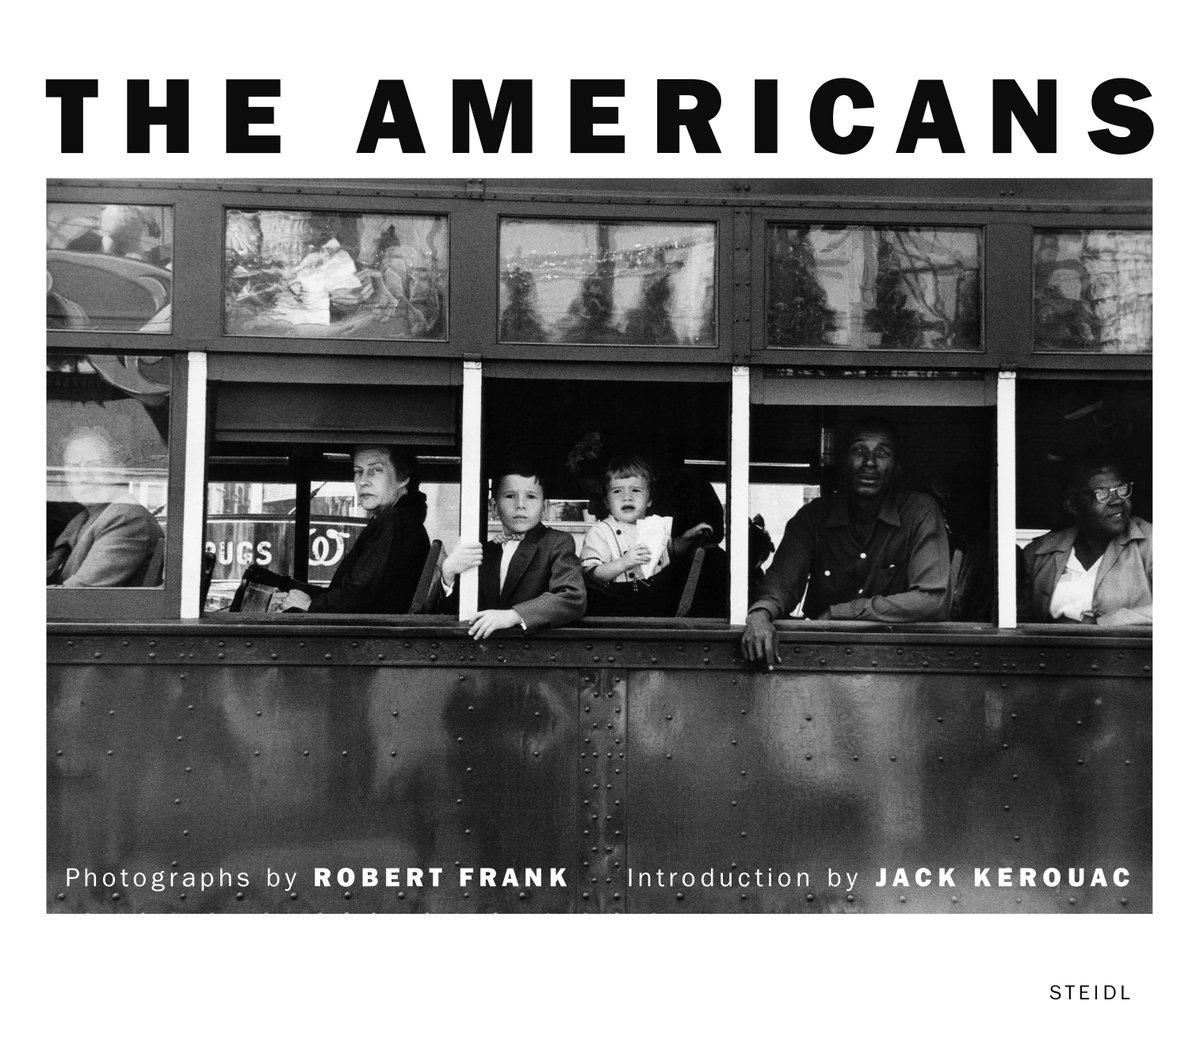 The Greatest Photobook of all time? THE AMERICANS by Robert Frank: https://t.co/rHP8yyWILc @sourcephoto https://t.co/66H7SuZ0x4